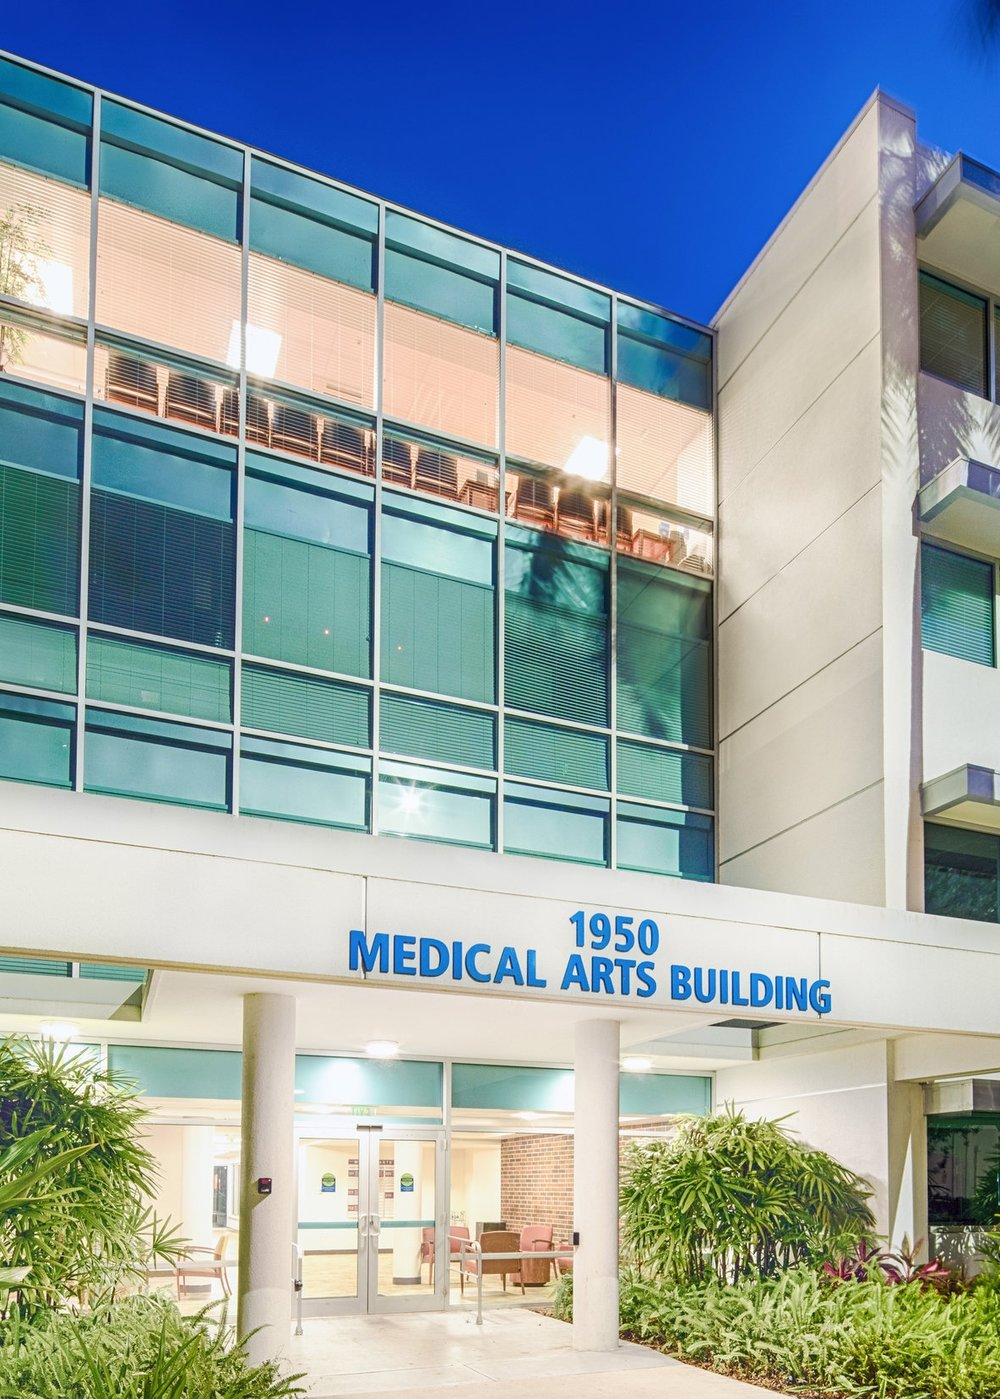 Sarasota Memorial Hospital - Medical Arts